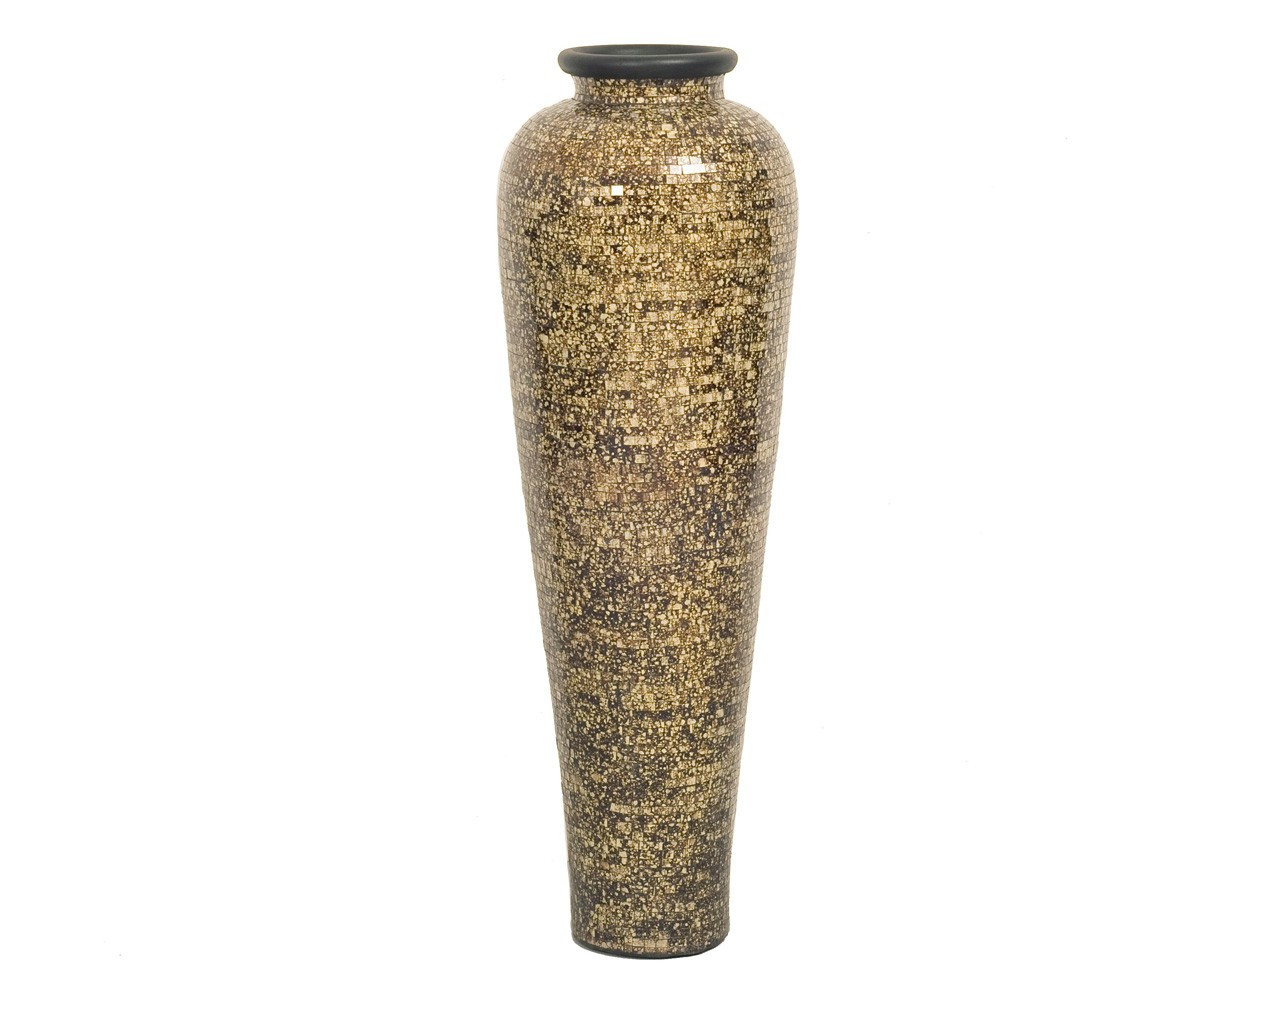 tall gold floor vase of large gold vases for the floor vase and cellar image avorcor com with regard to unusual design floor vase ideas featuring cream color and tall candle holders beautiful with faux crystal alive vases gold jpgi 0d